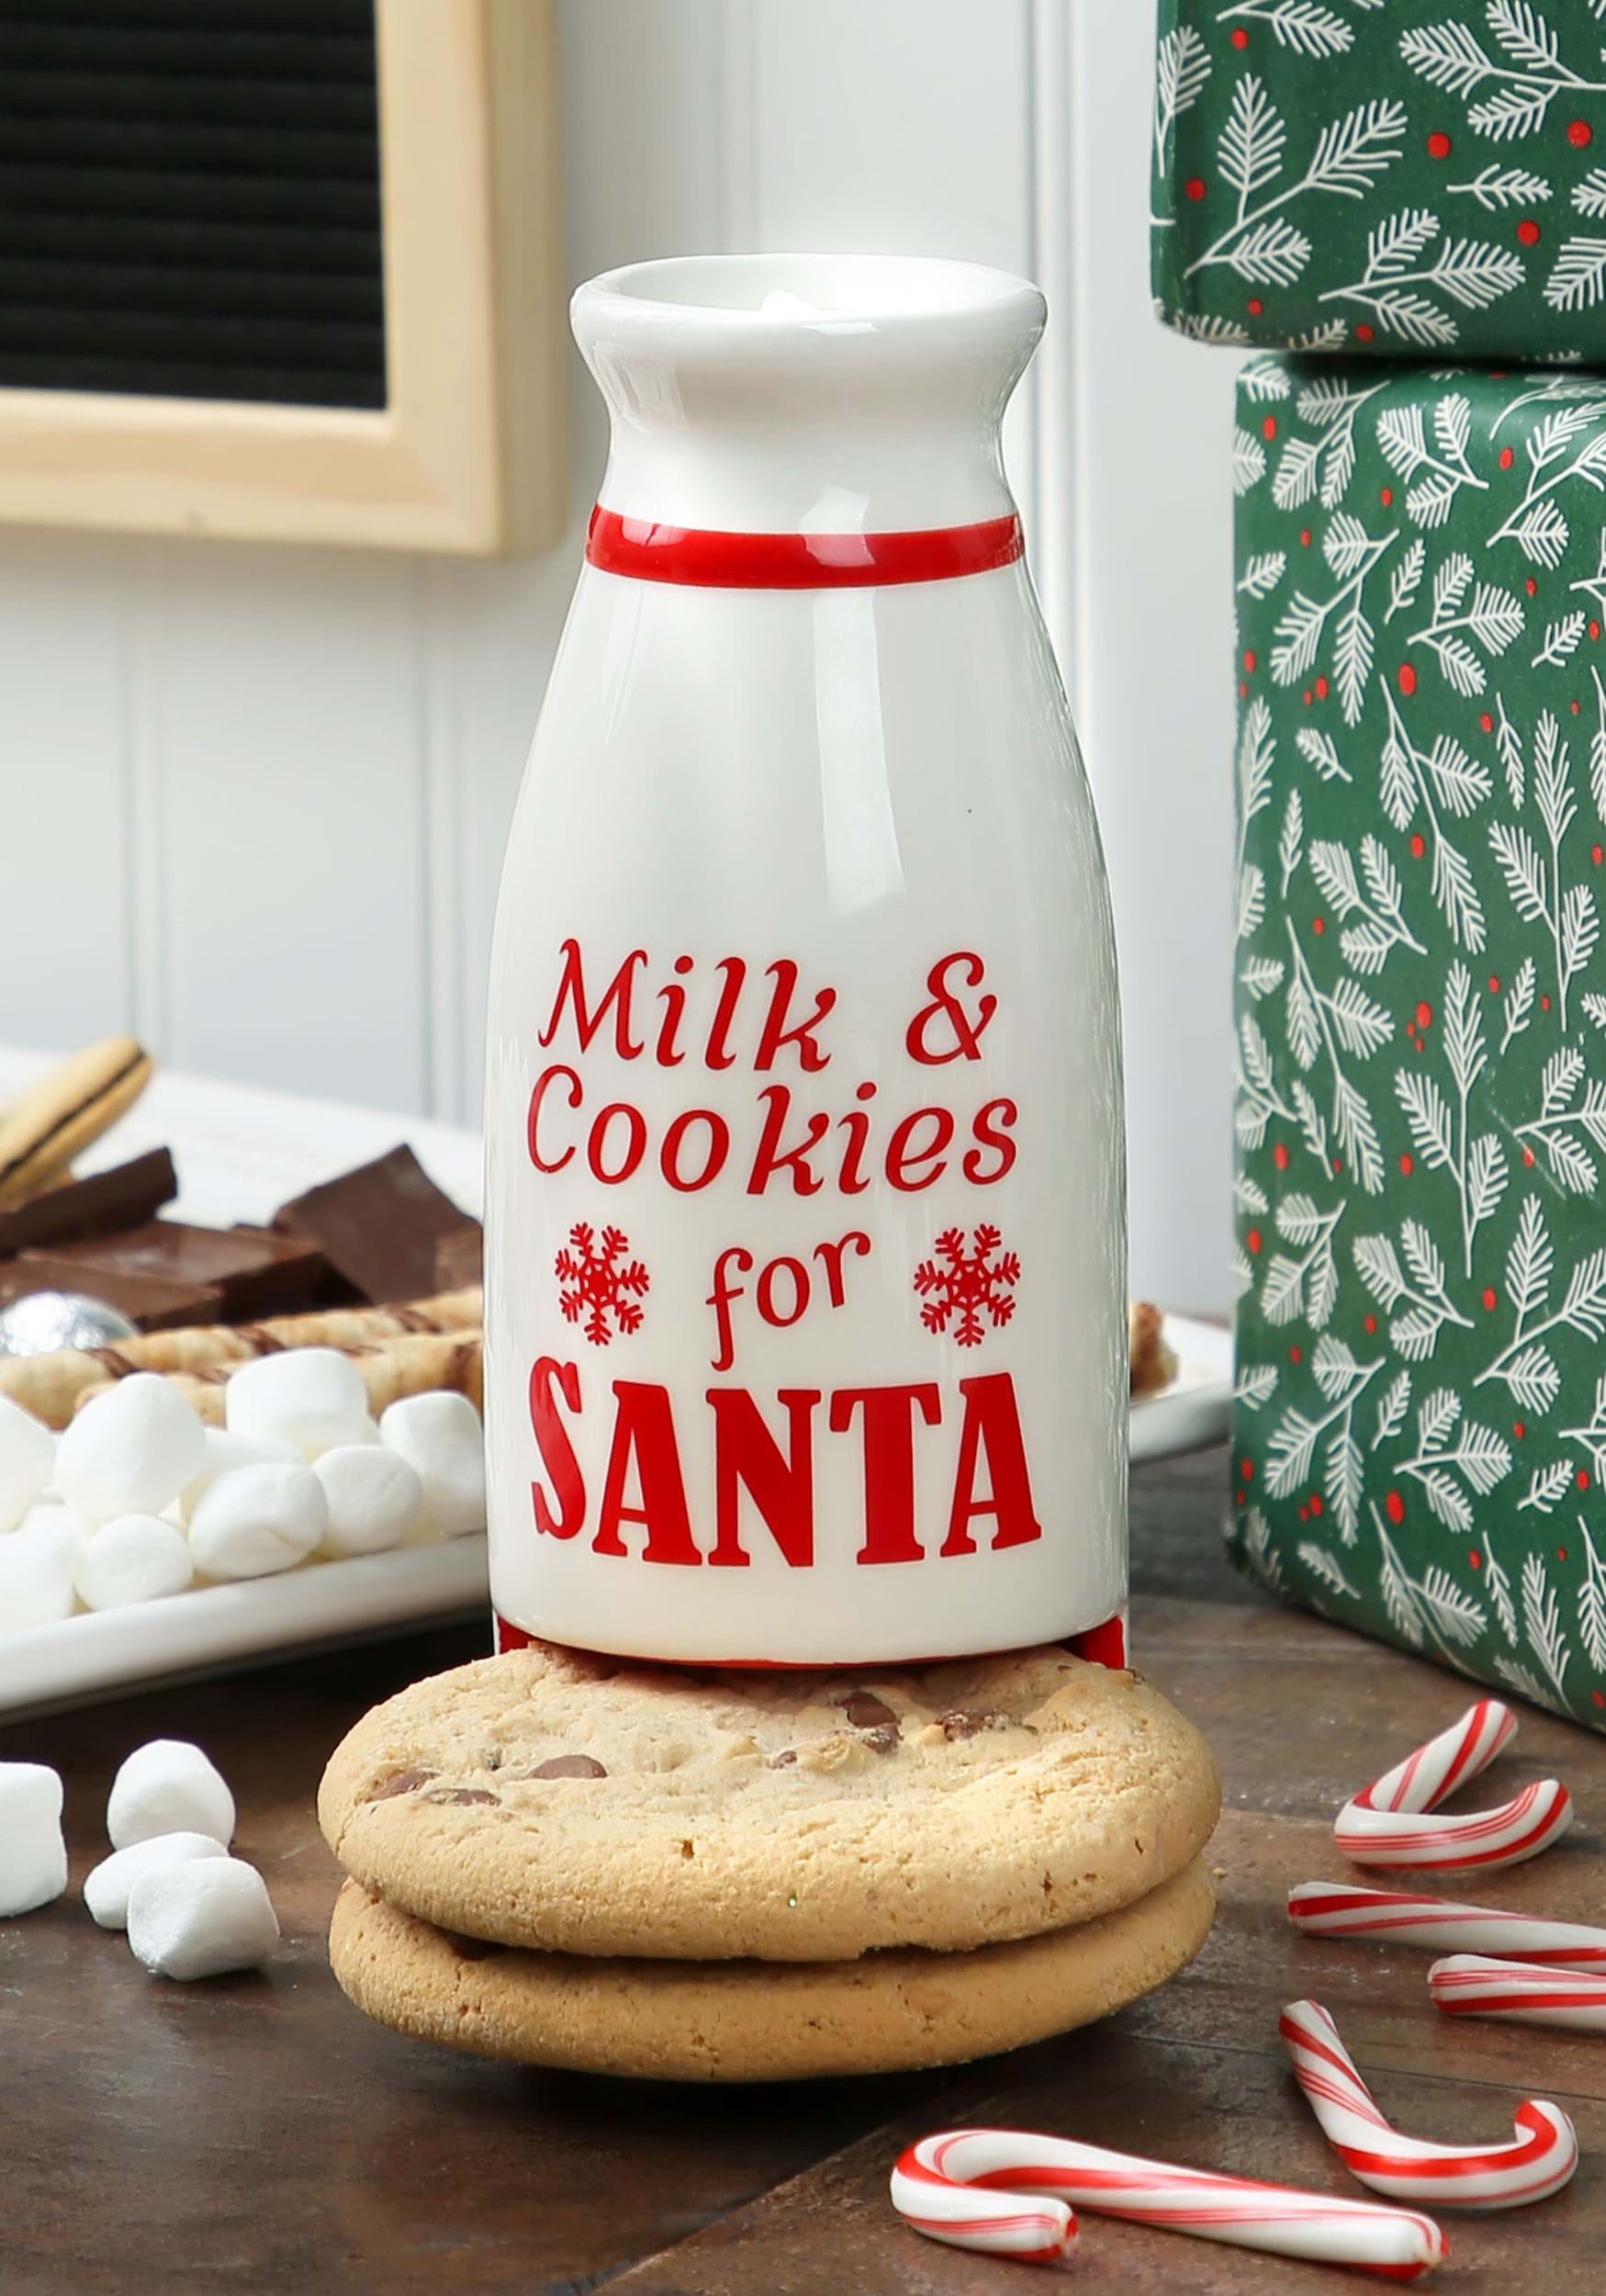 Milk Bottles For Decoration Milk Bottle Santa S Milk Cookies